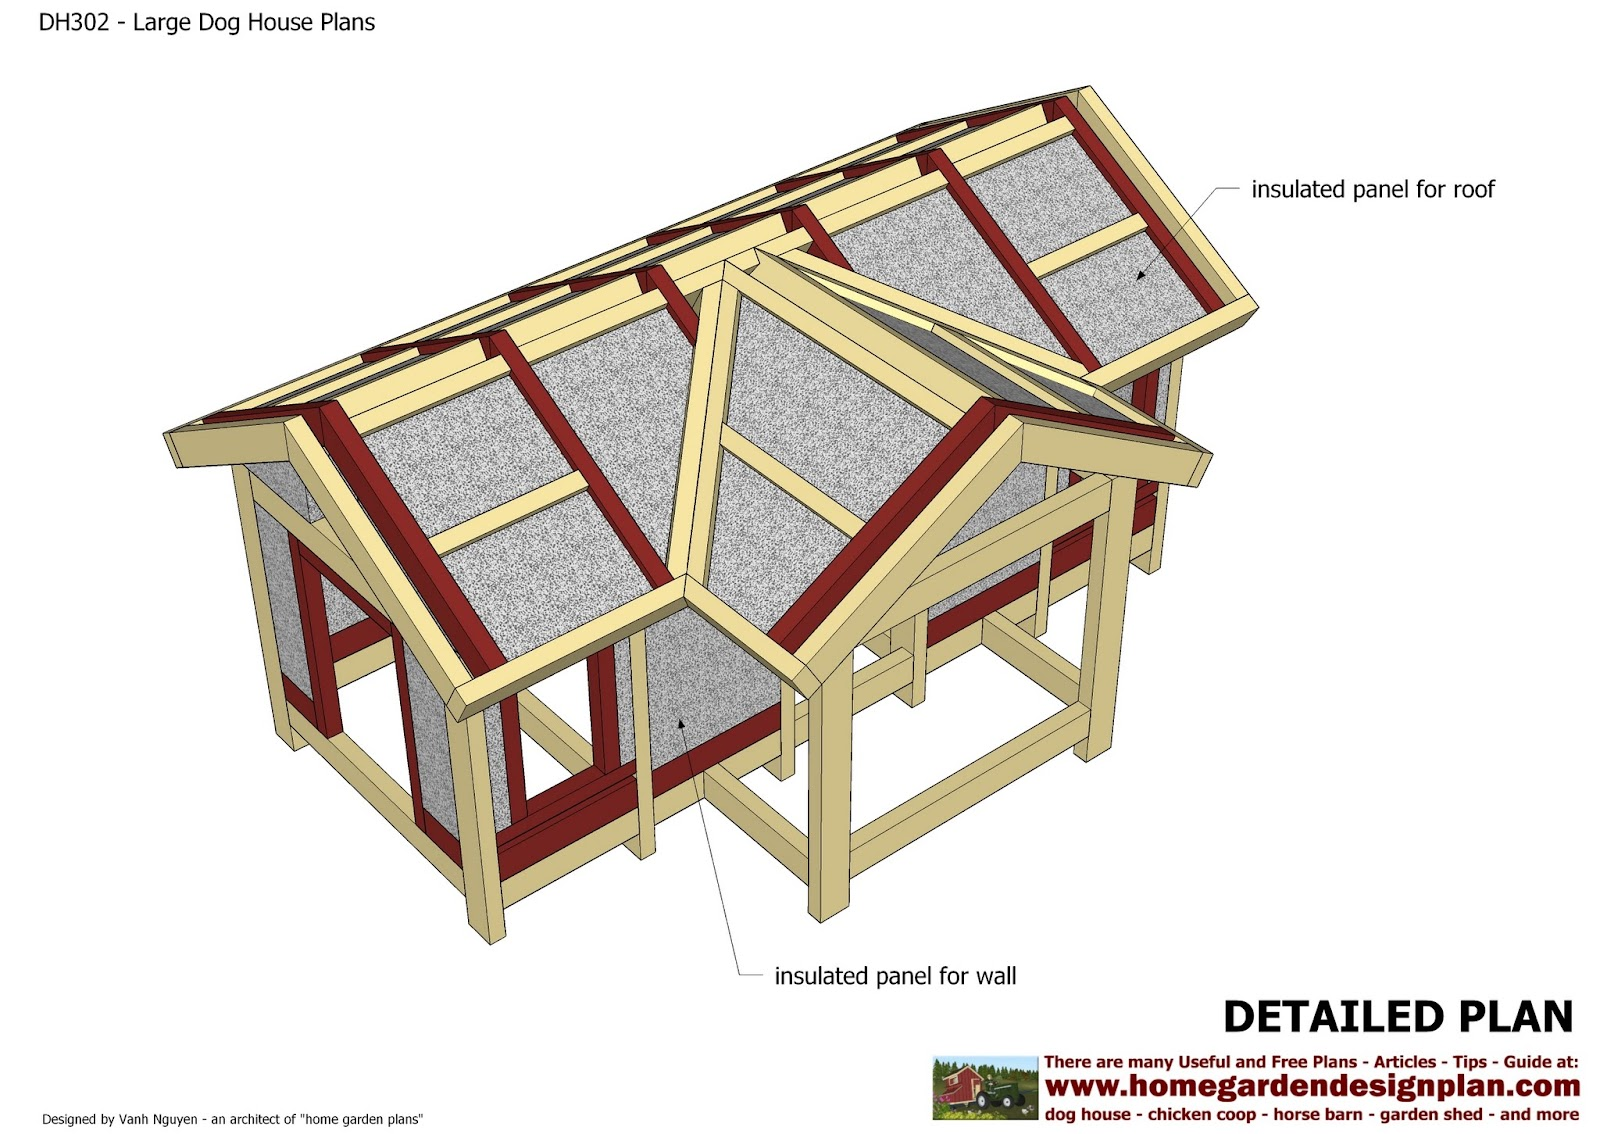 dh302 insulated dog house plans construction